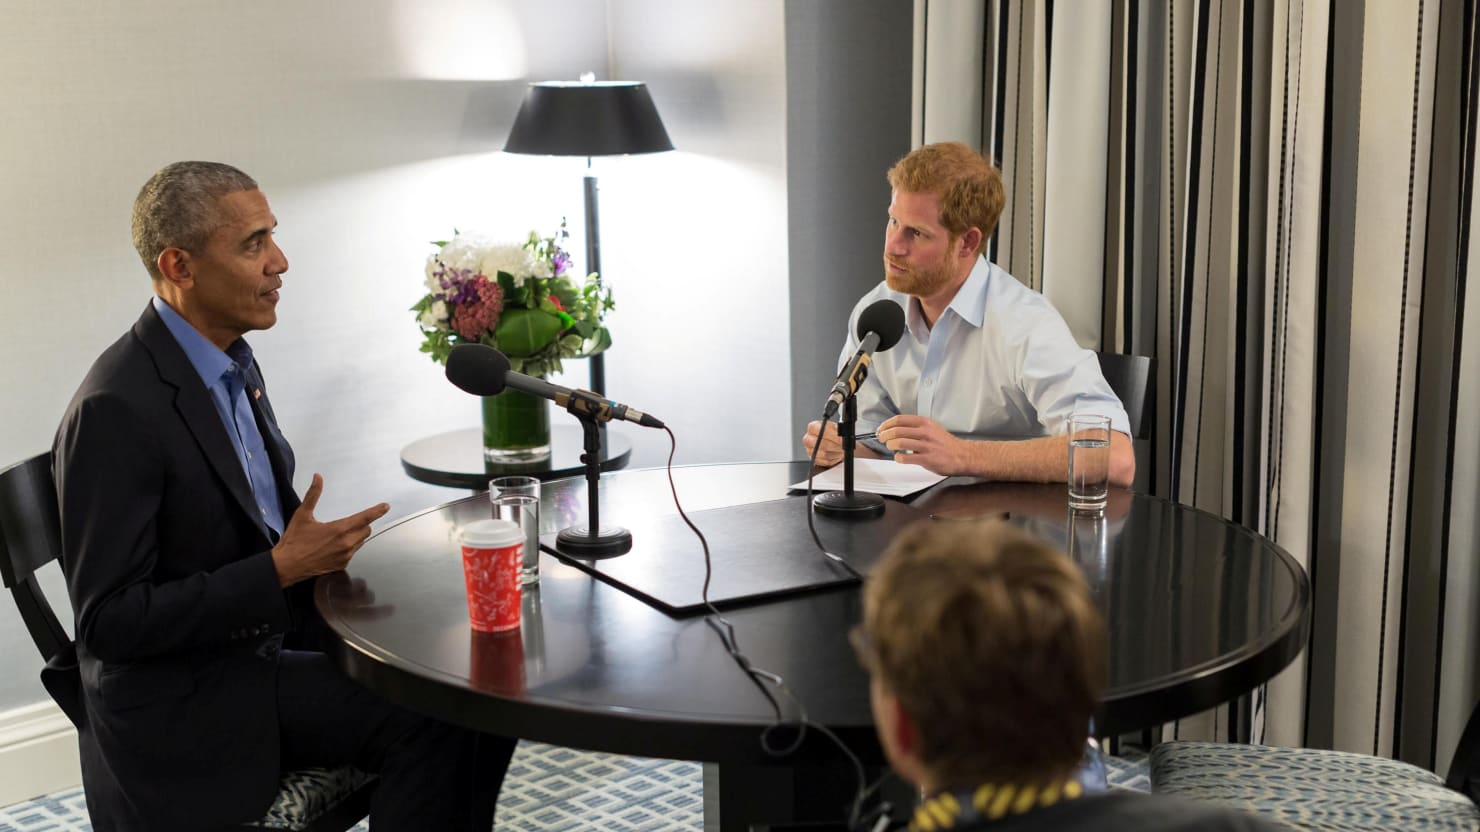 Prince Harry and Barack Obama sit at a round table in front of microphones